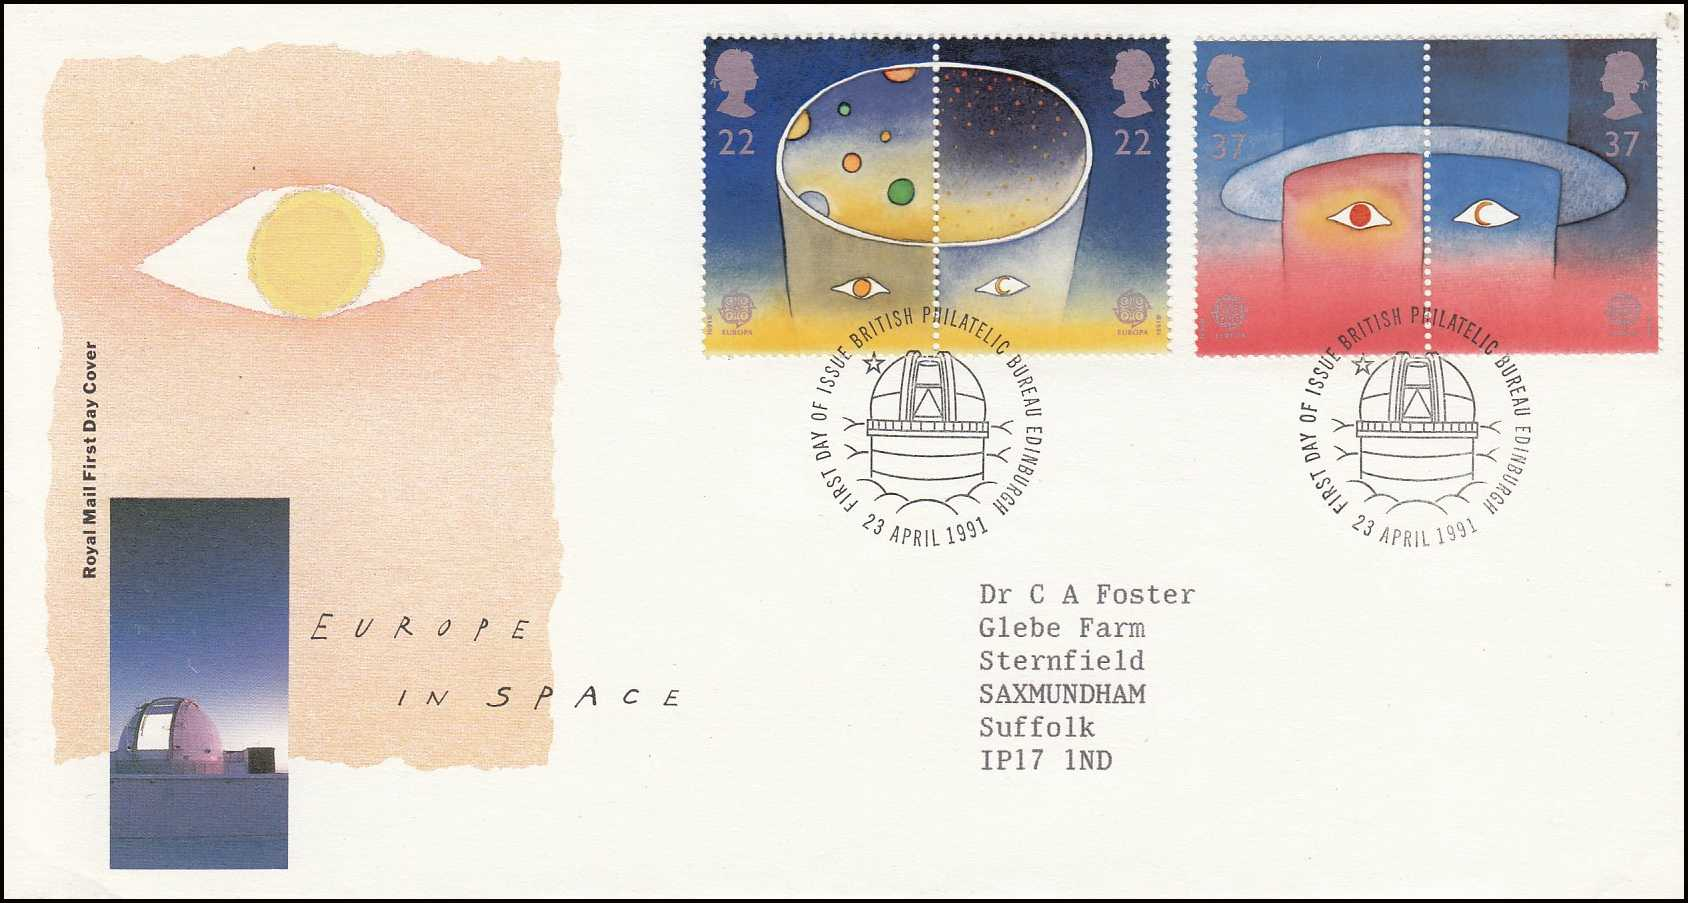 --- - Europe in Space. Royal Mail Special Commemorative Issue Cover. Franked Edinburgh, 23rd April 1991.